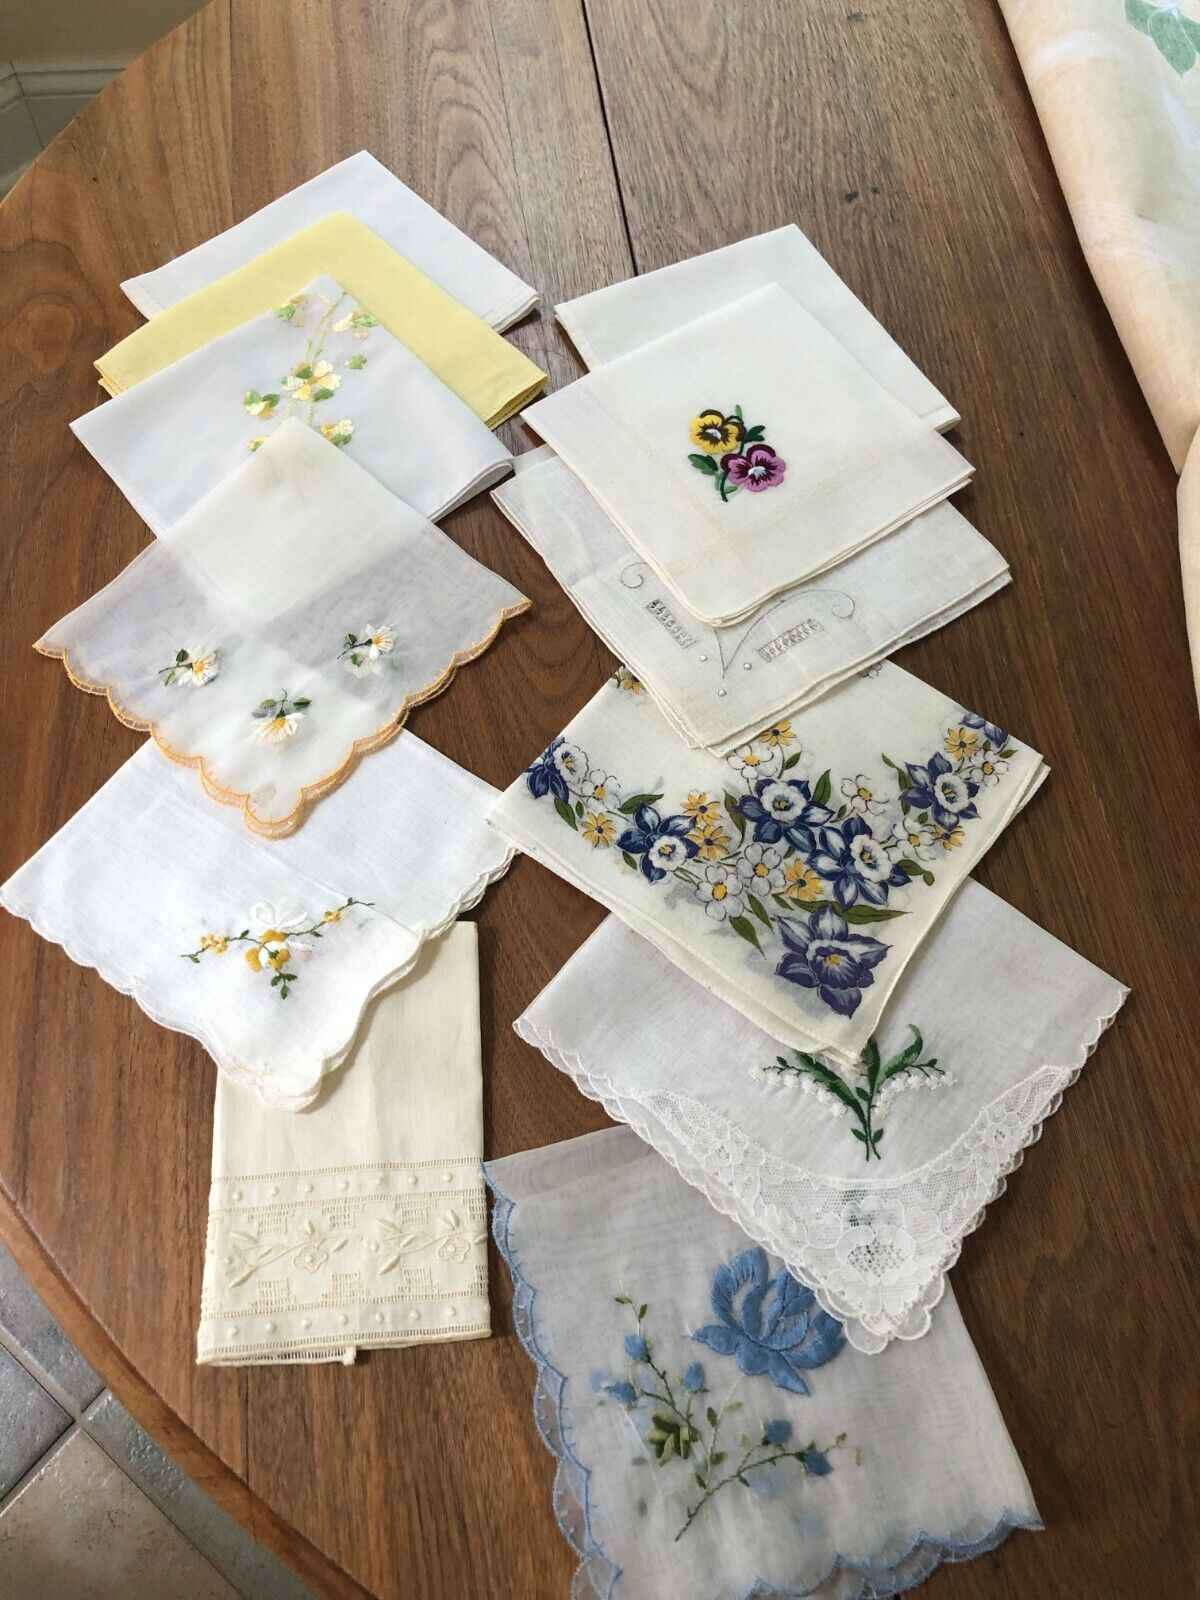 One Dozen  Embroidered, Lace Trimmed Handkerchiefs  Unbranded Does Not Apply